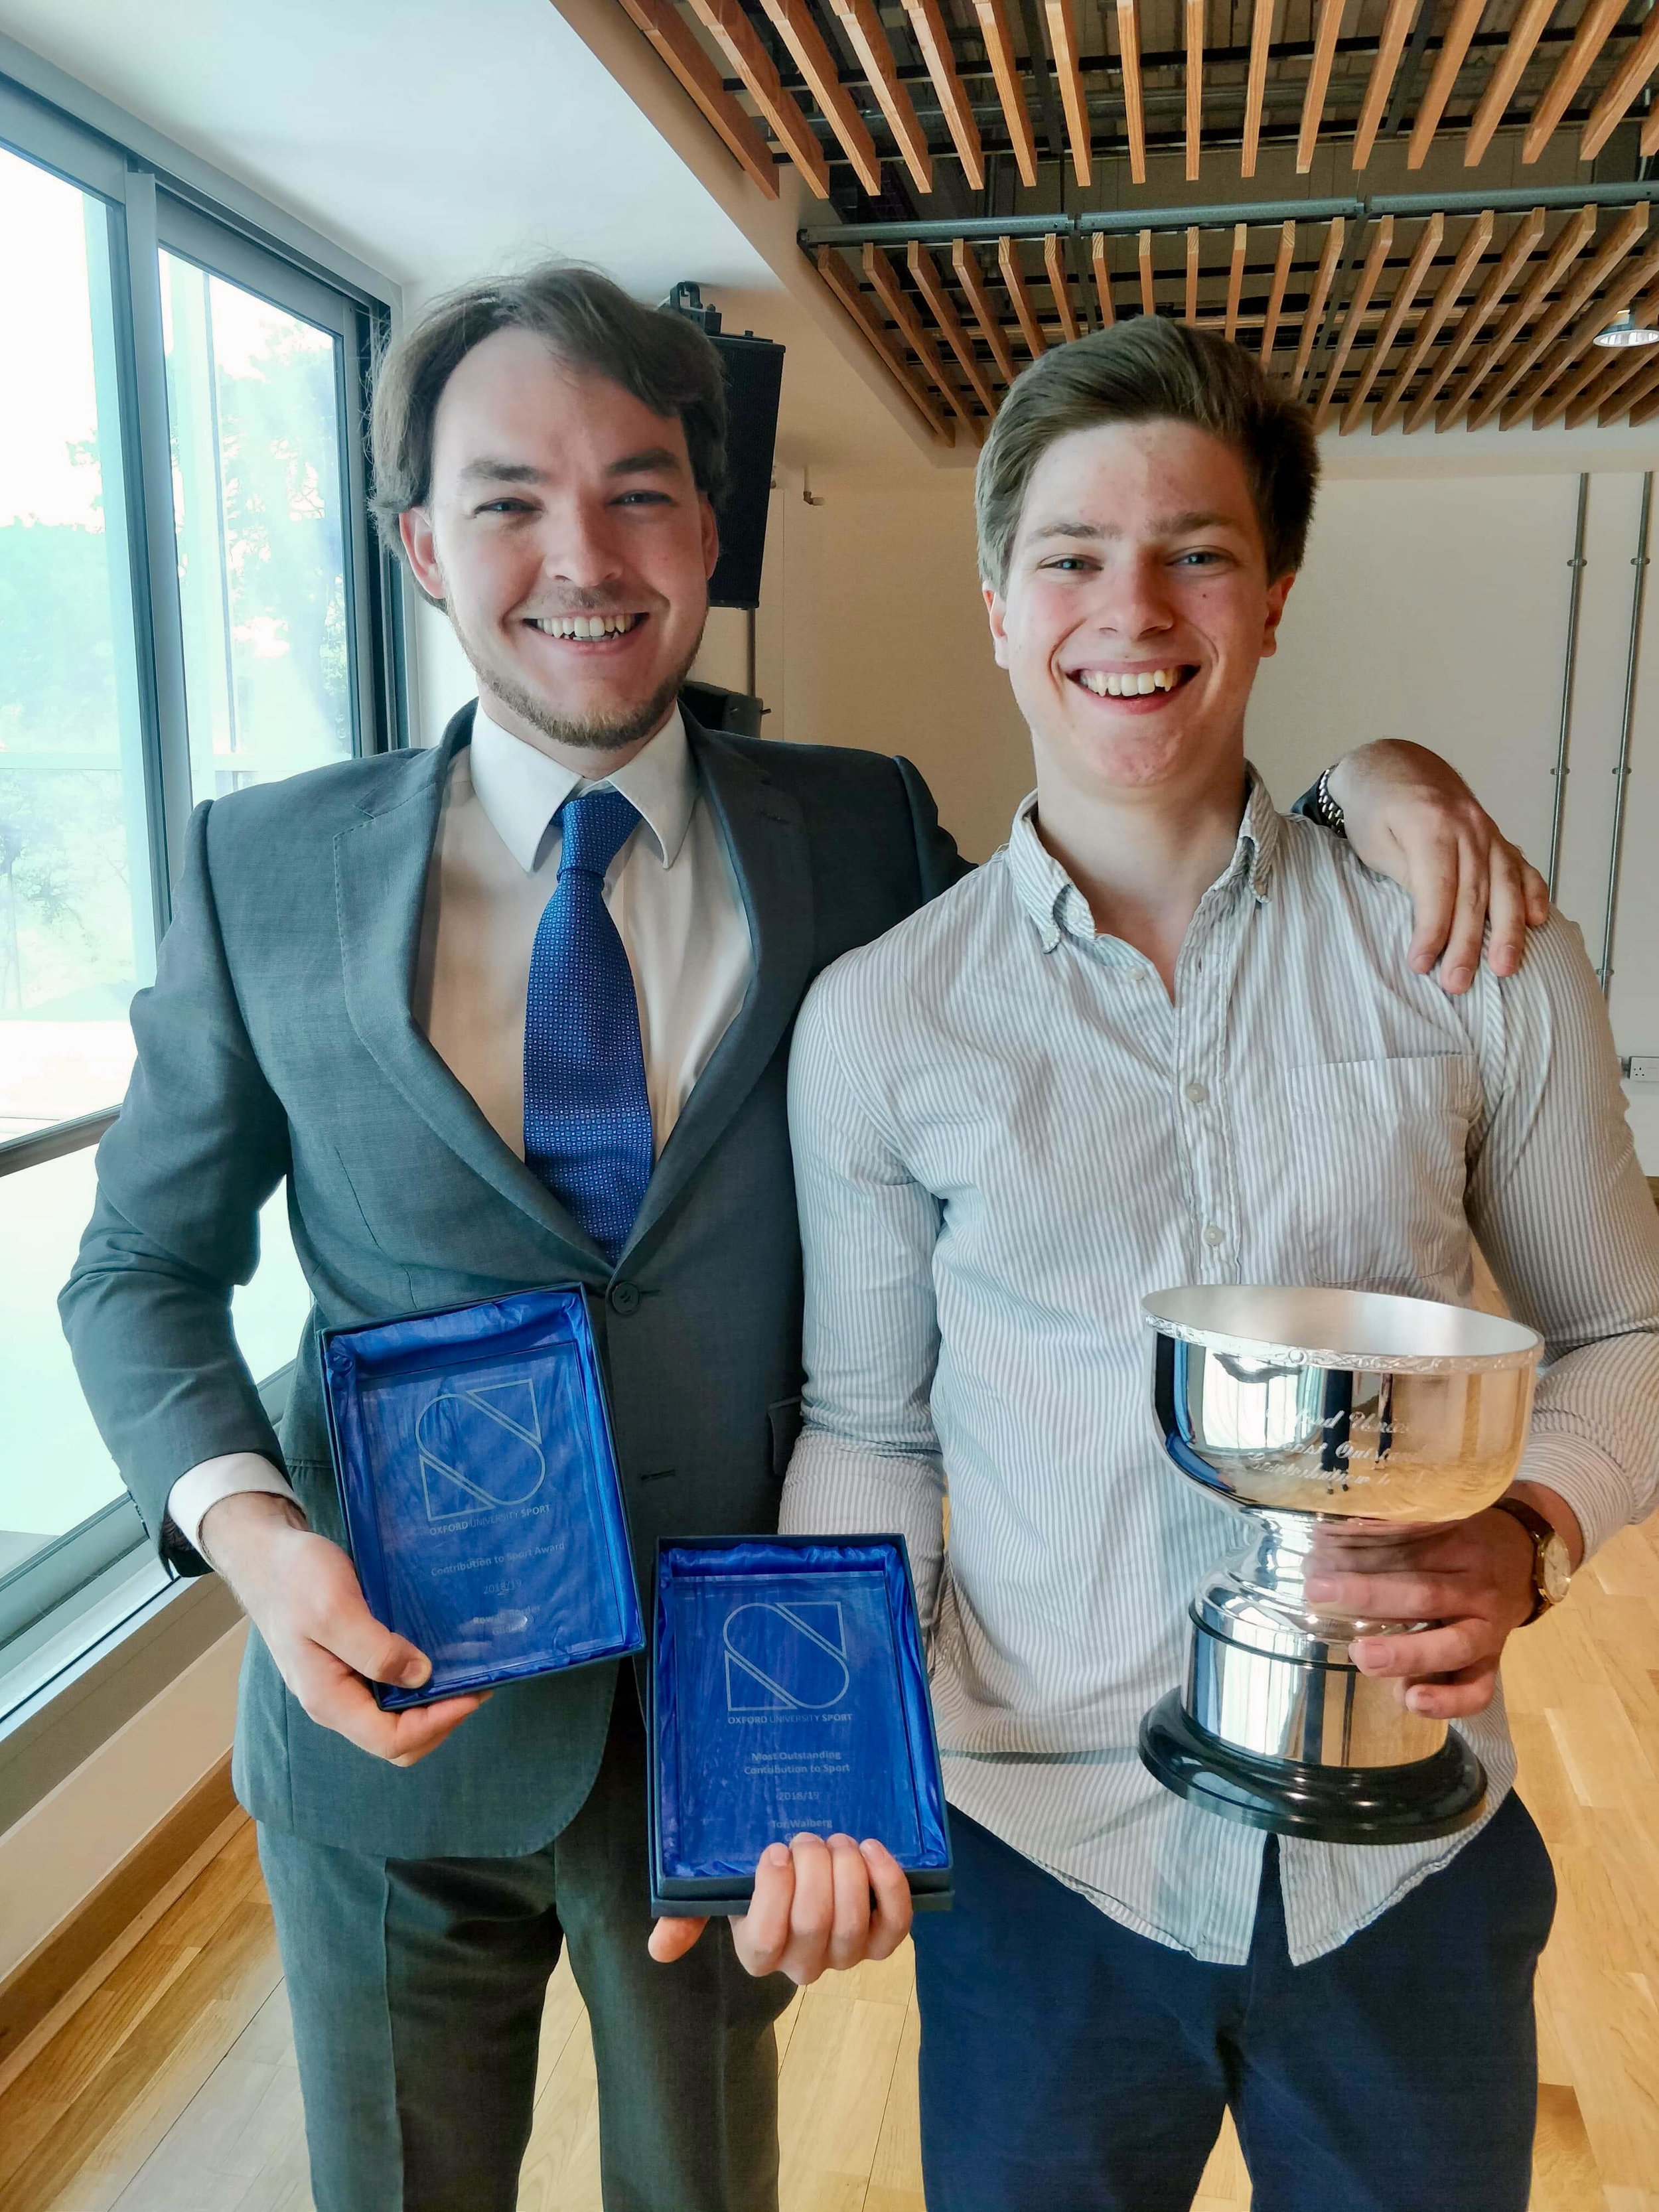 May 2019 - Sports Awards - Congratulations to Rowan and Tor for winning Contribution to Sports Award at Oxford University Sports Ball hosted by Oxford University Sports Federation.